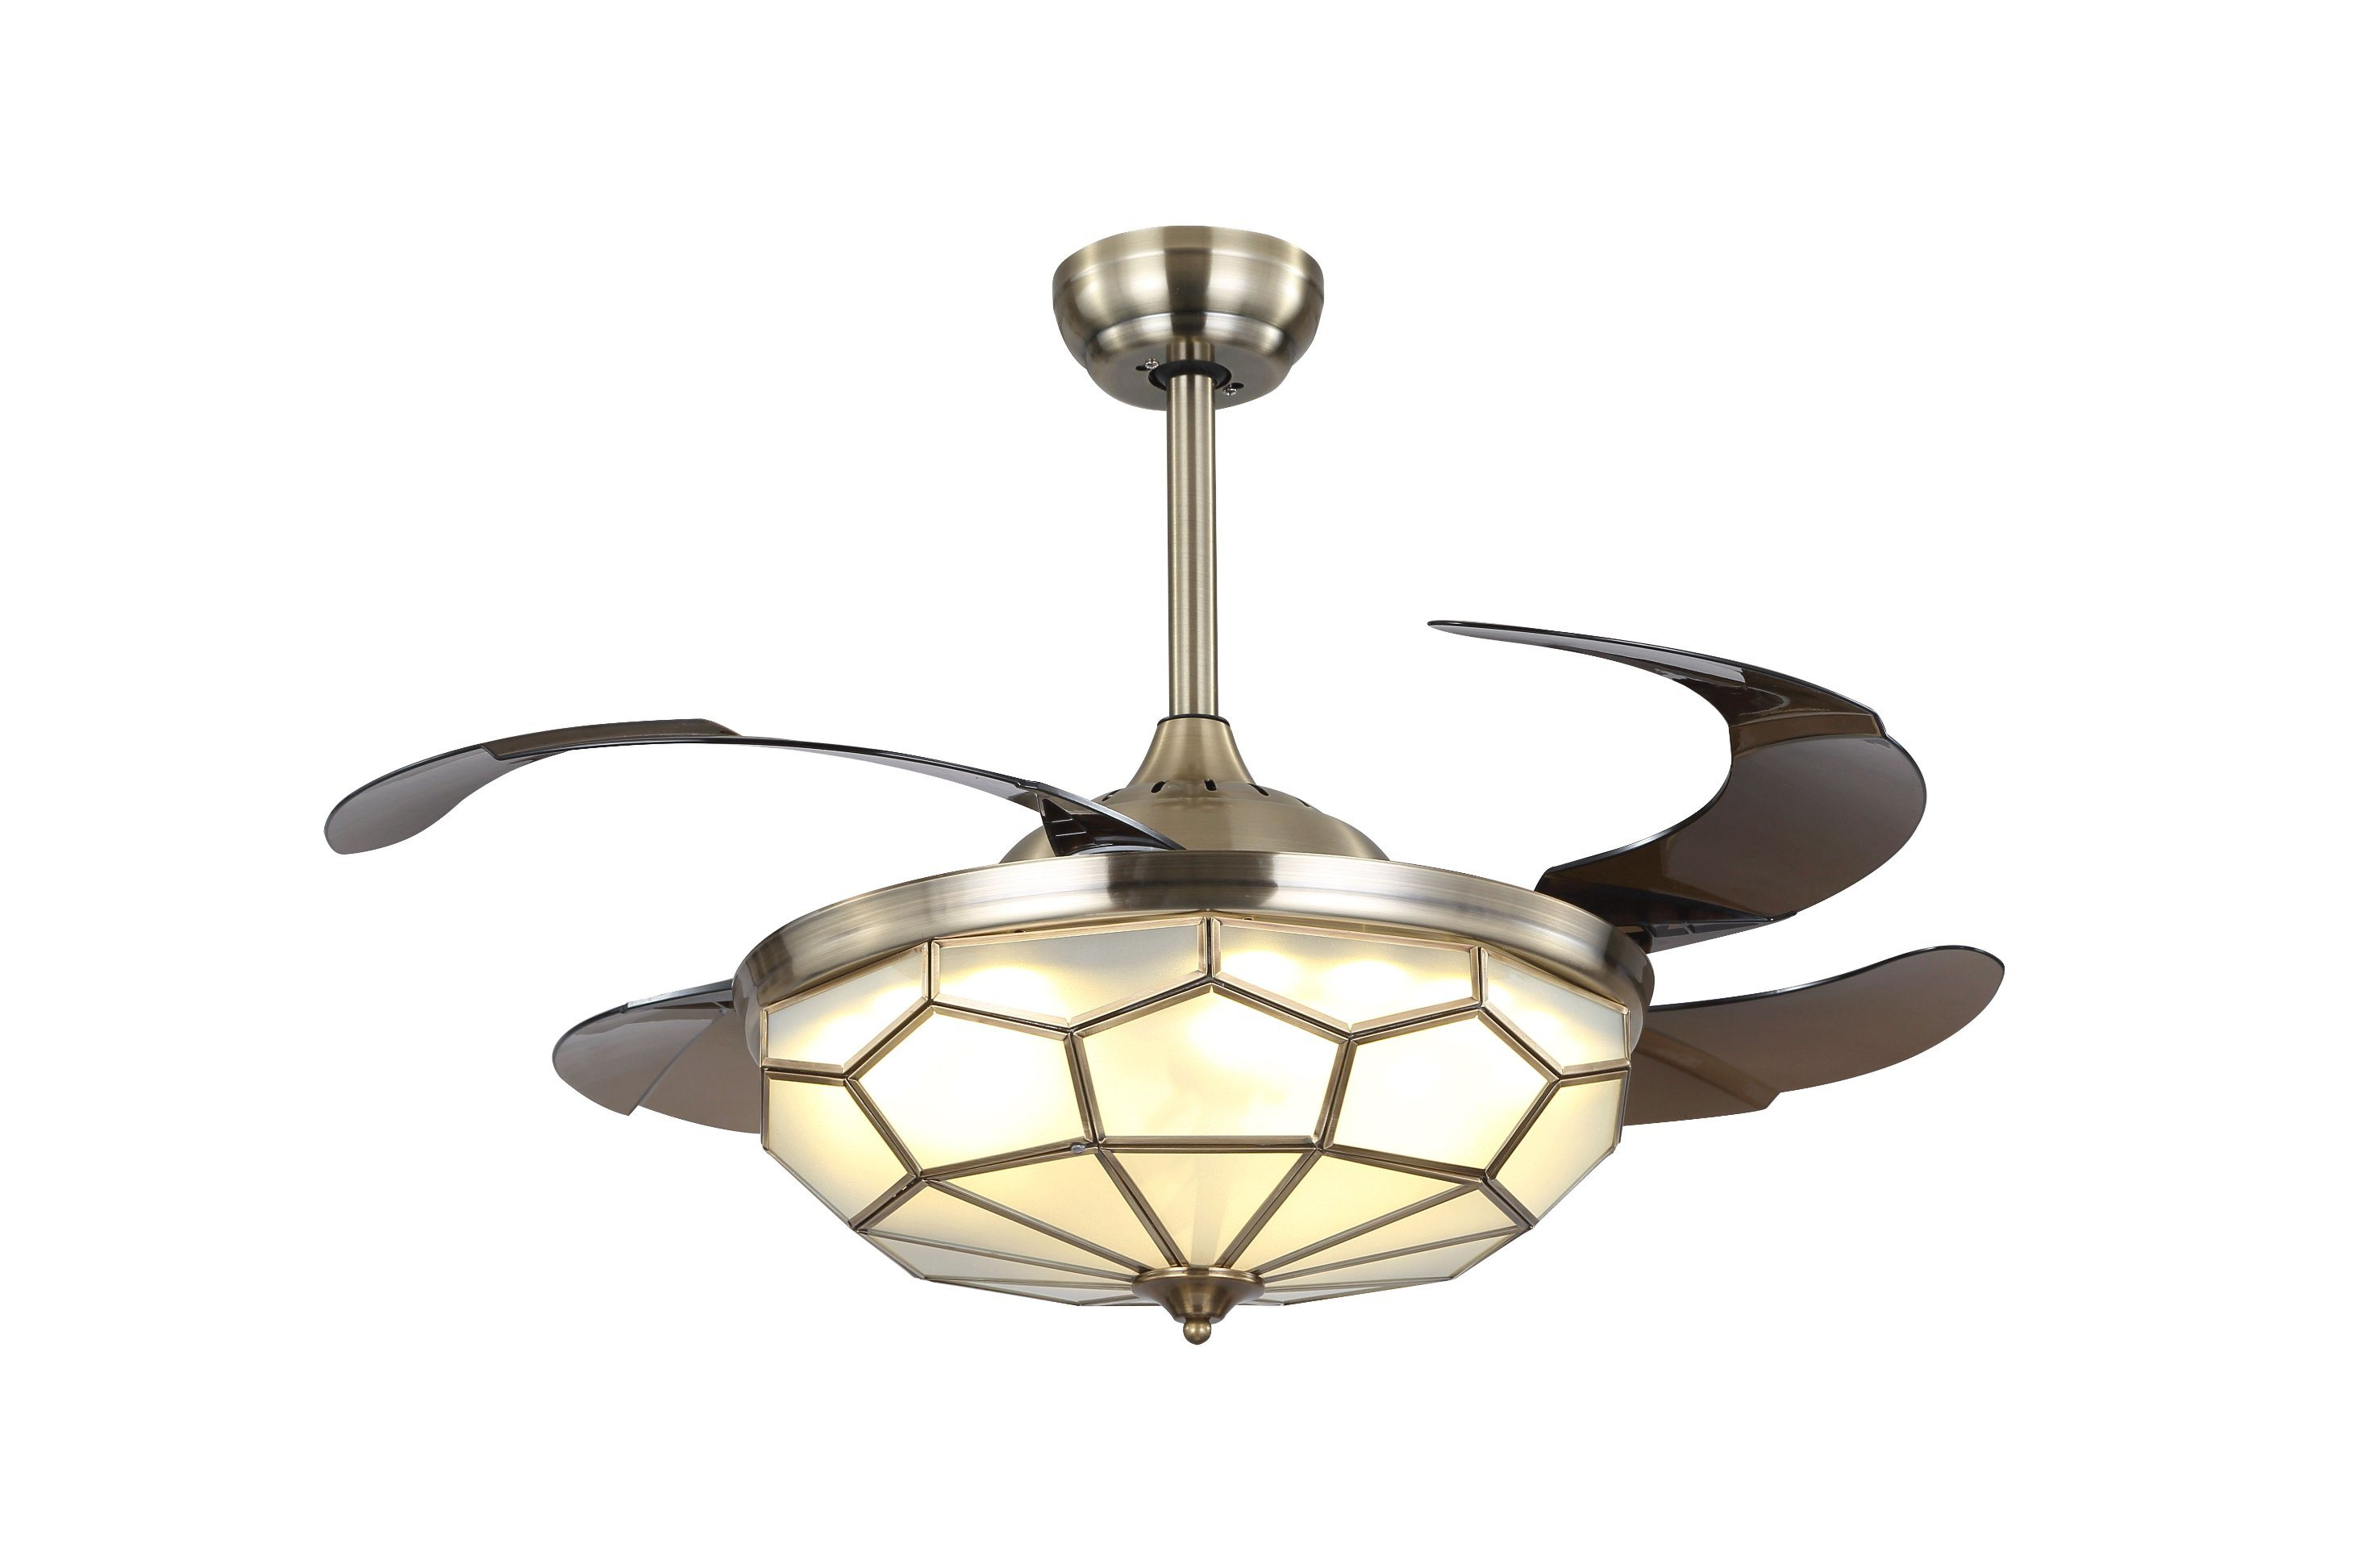 China mediterranean style ceiling fan light with hidden blades china ceiling fan ceiling fan with light